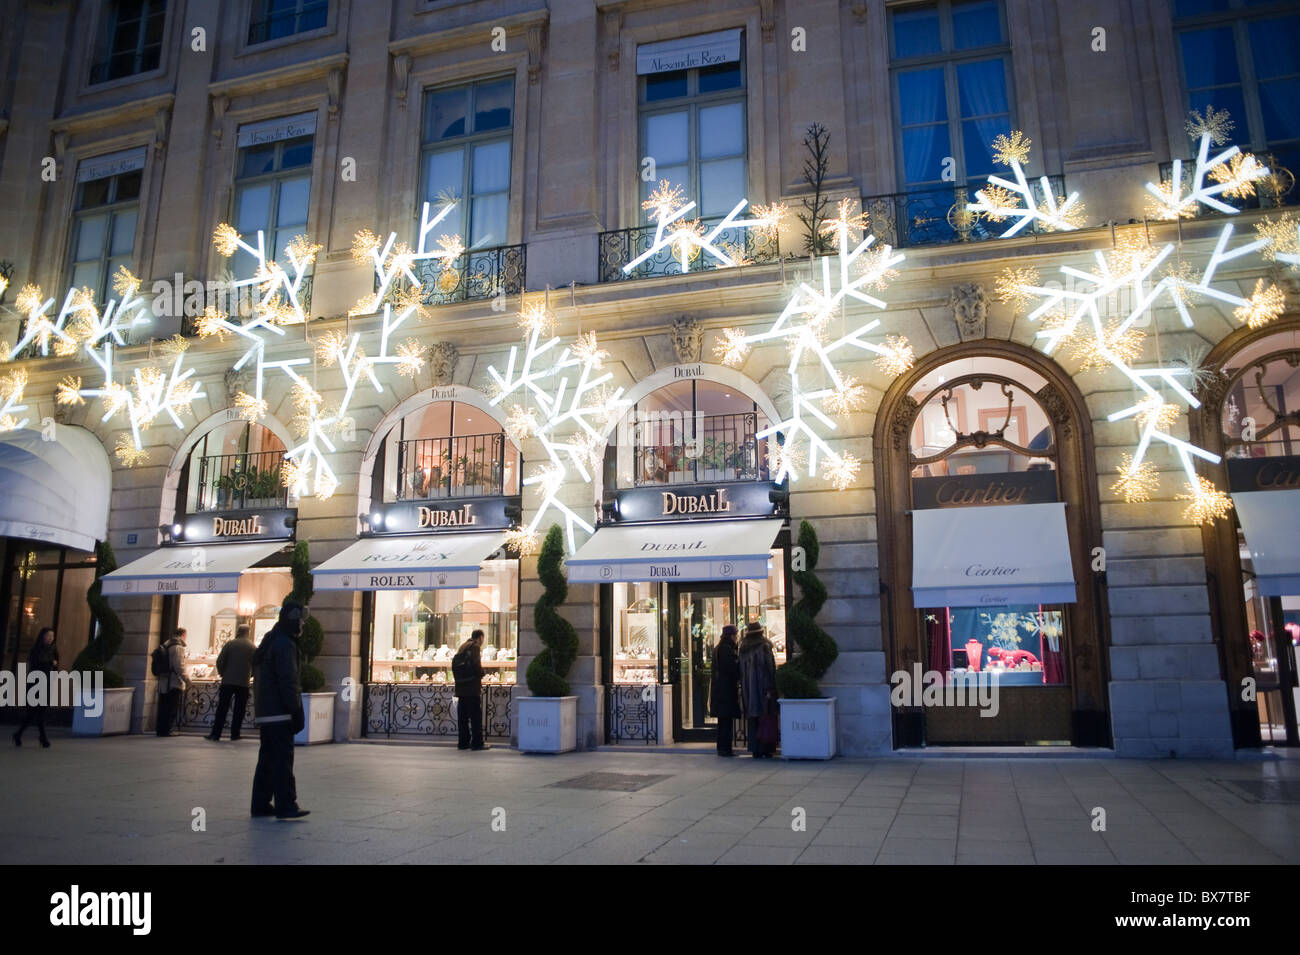 paris france luxury christmas lights shopping dubail jewelry shop front